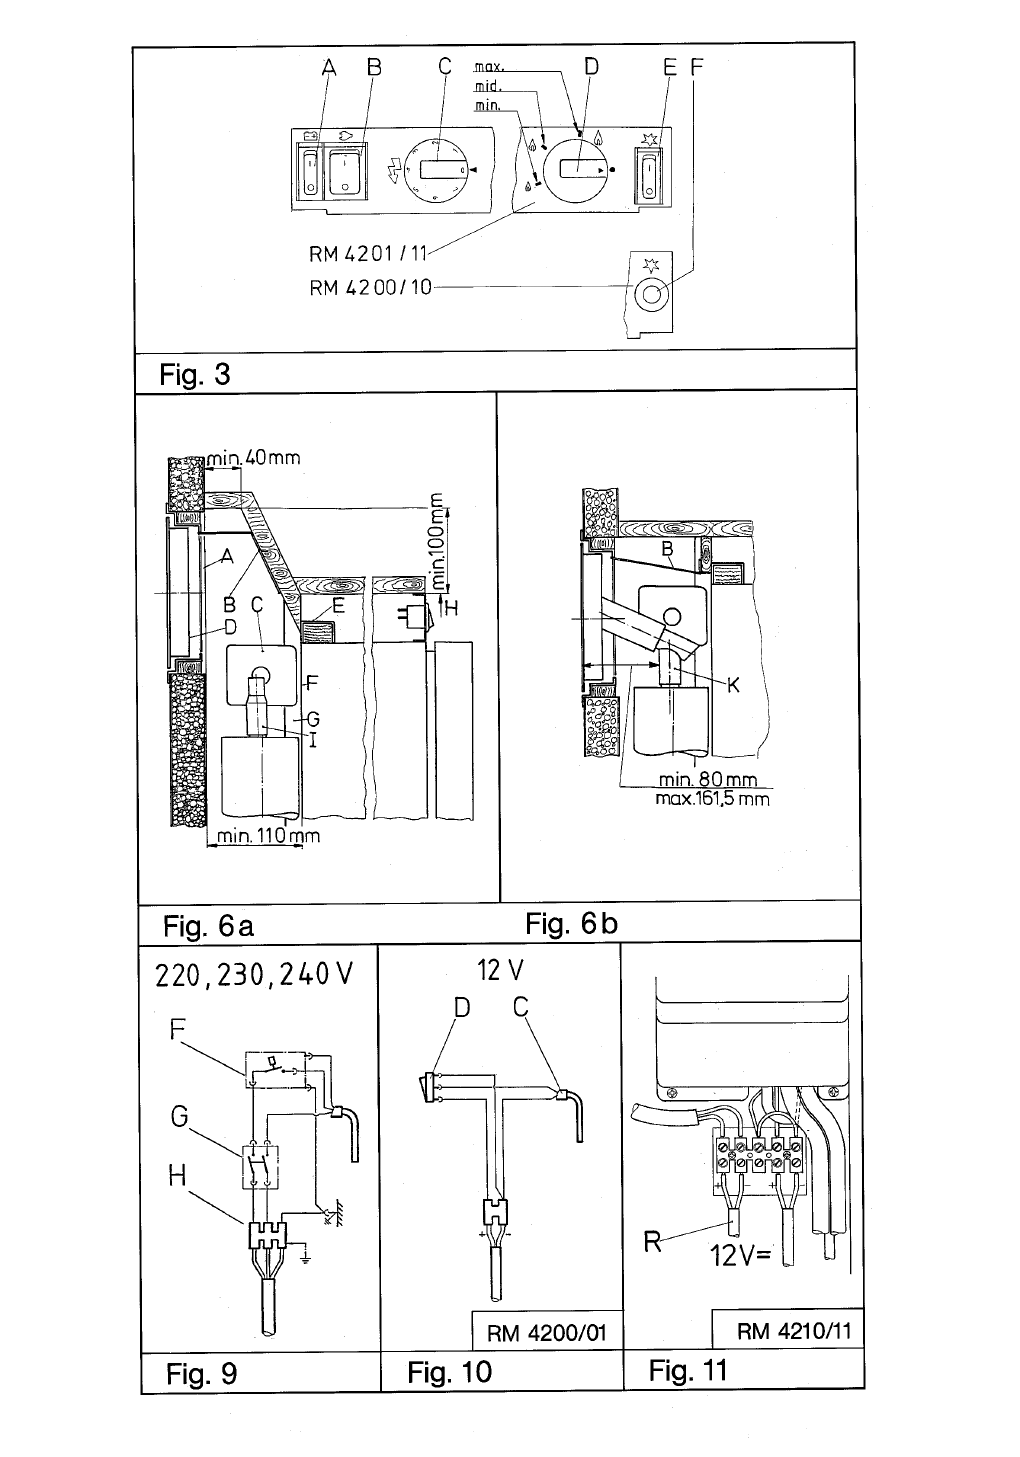 Page 9 of Electrolux Refrigerator RM 4200 User Guide ... Schematic Diagram Electrolux Refrigerator on